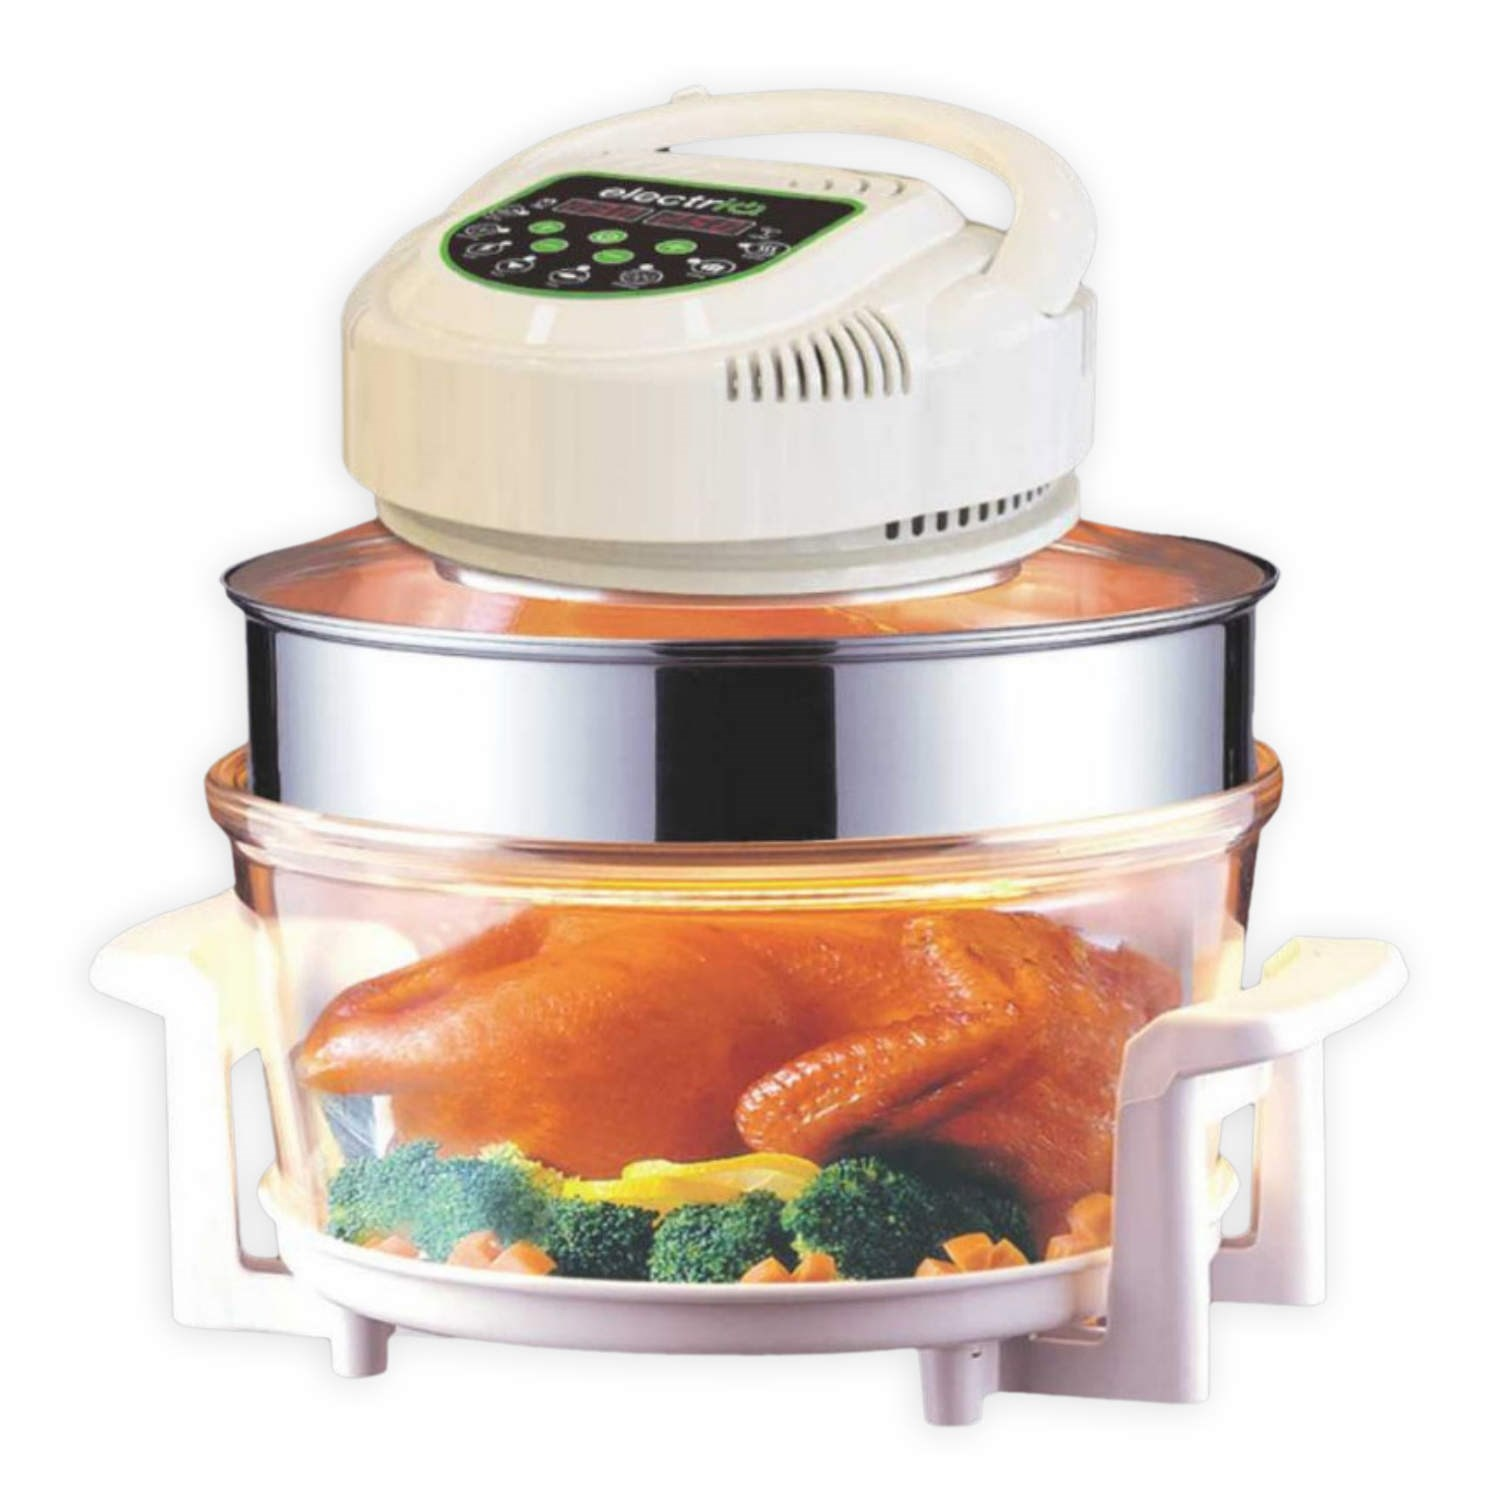 17 Litre Digital Premium Halogen Convection Oven Cooker + Extender Ring